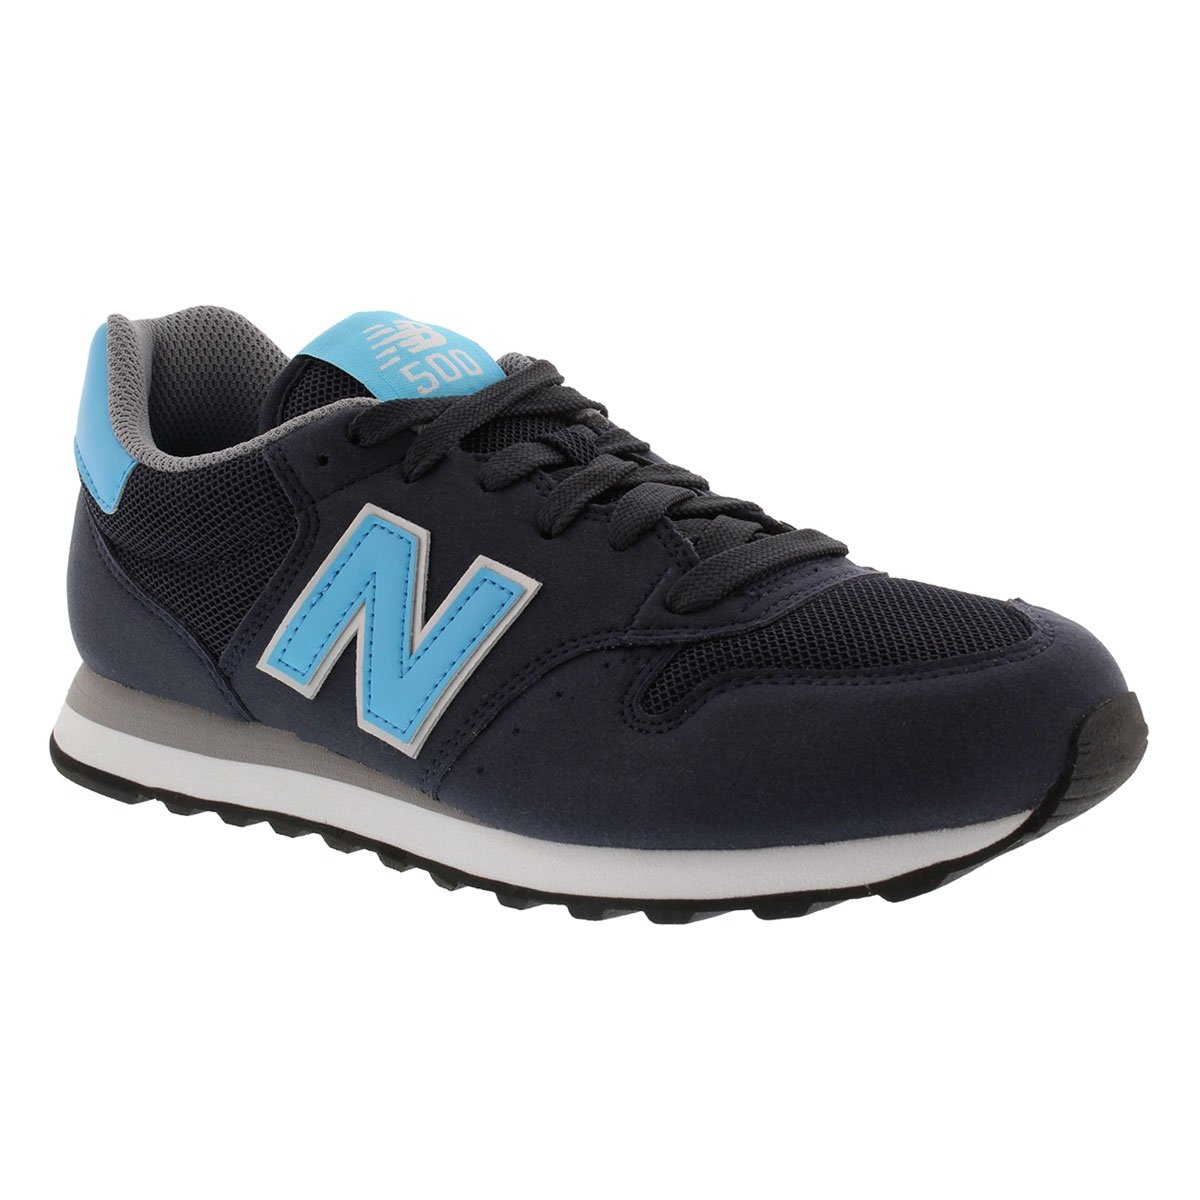 New Balance Womens Gw500nsb Navy Low Top Trainers Blue Size 37